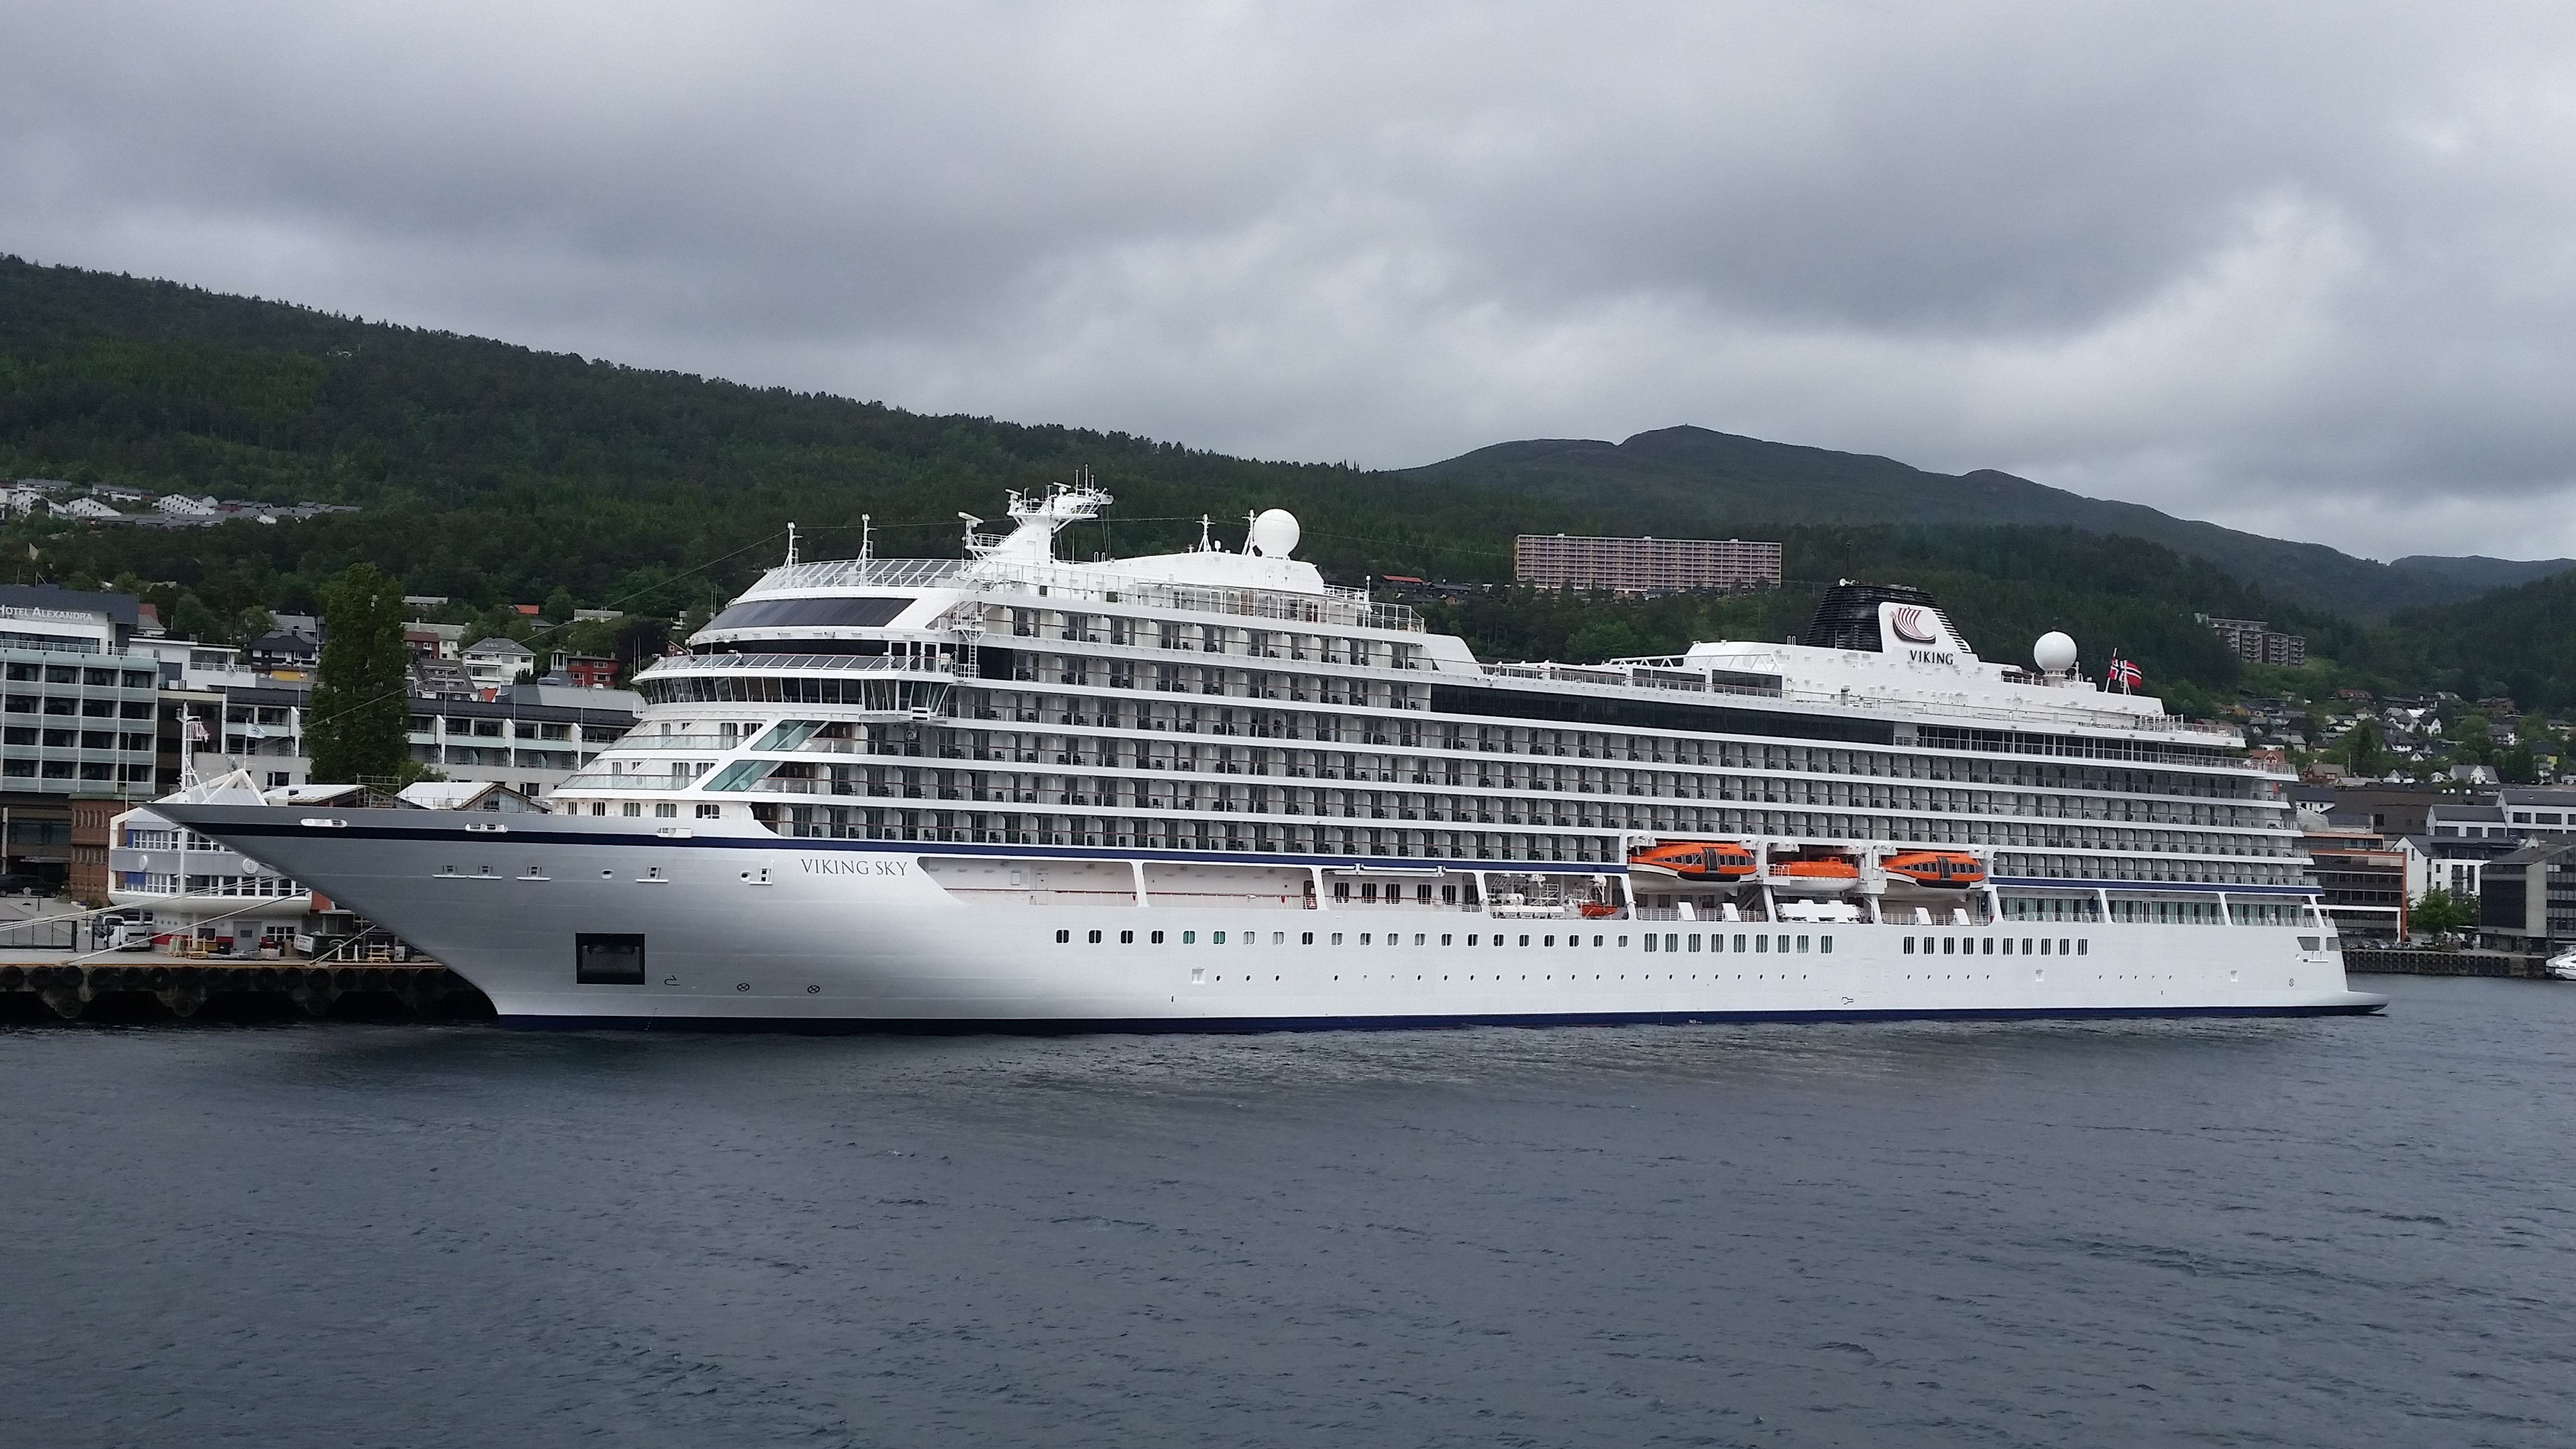 Viking Cruises | Voted #1 by Travel + Leisure | Oceans ...